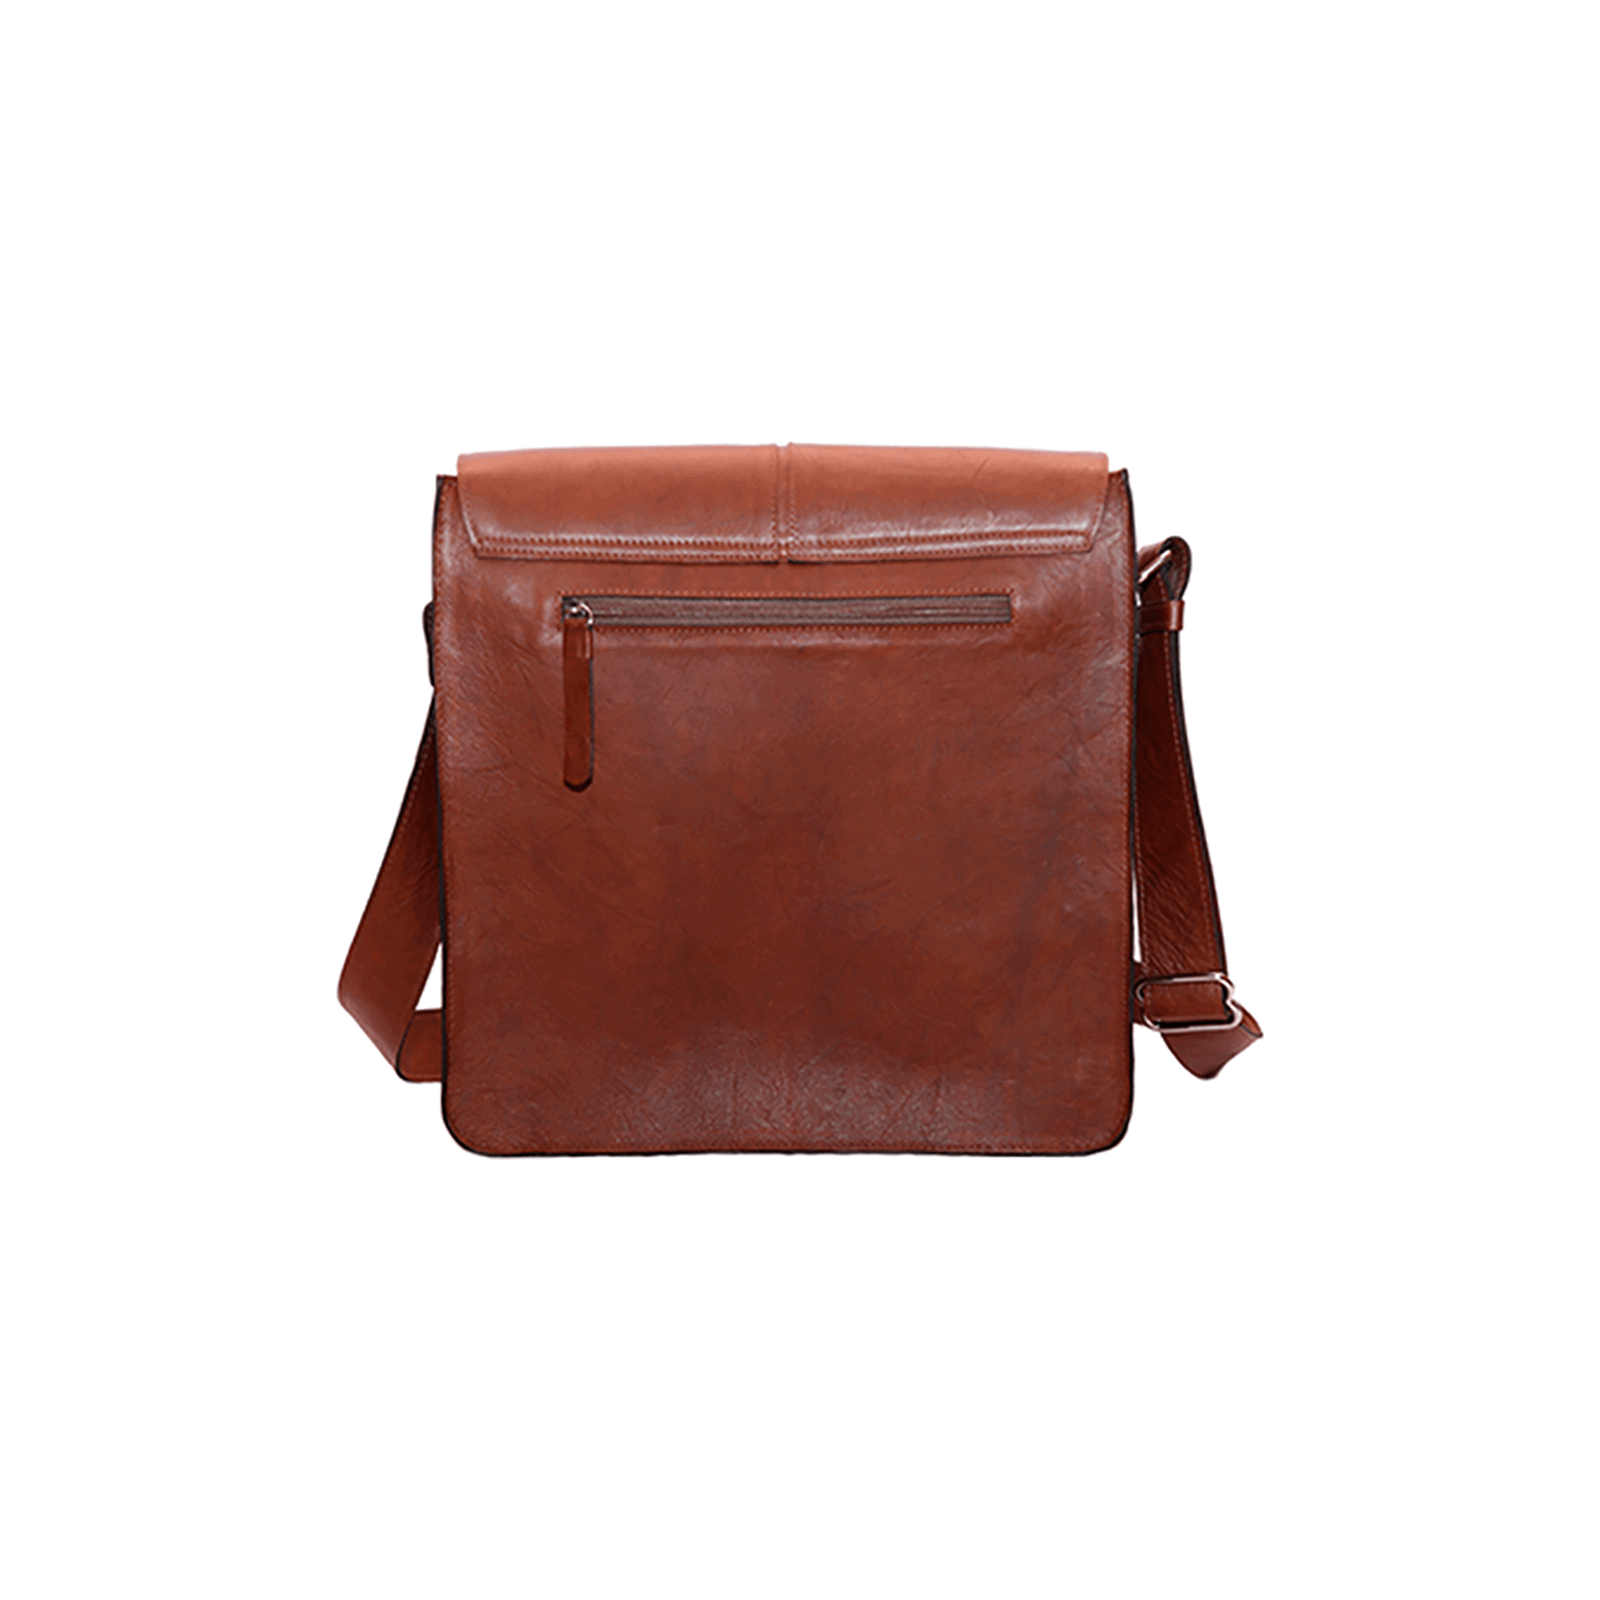 Man crossbody